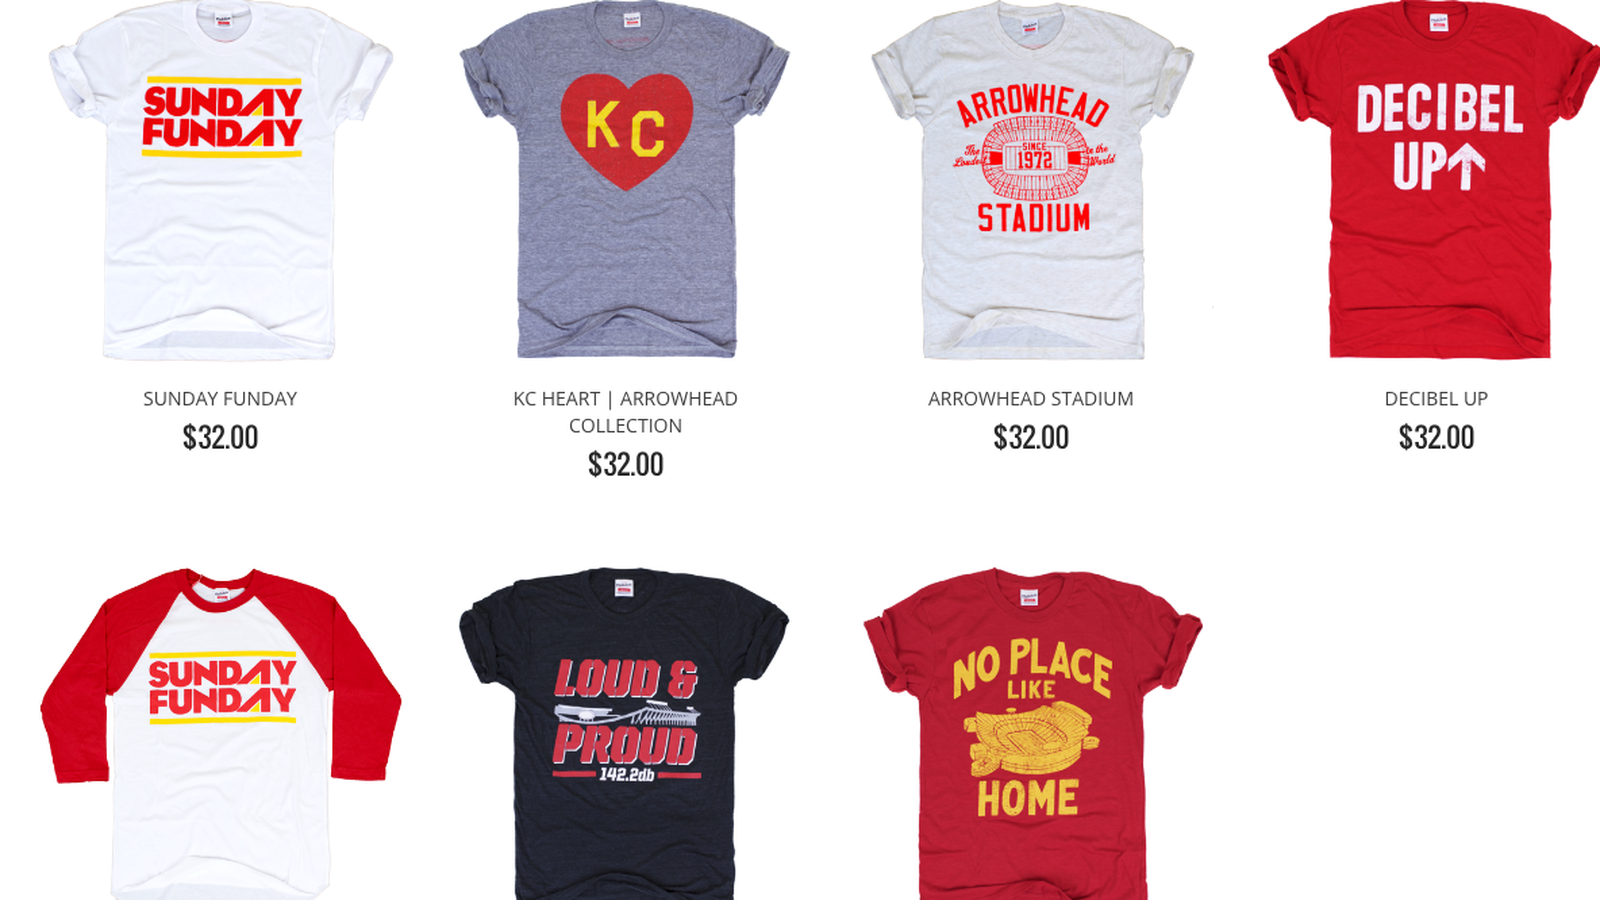 newest f2821 f2b3b Charlie Hustle now has a collection of KC Chiefs shirts ...